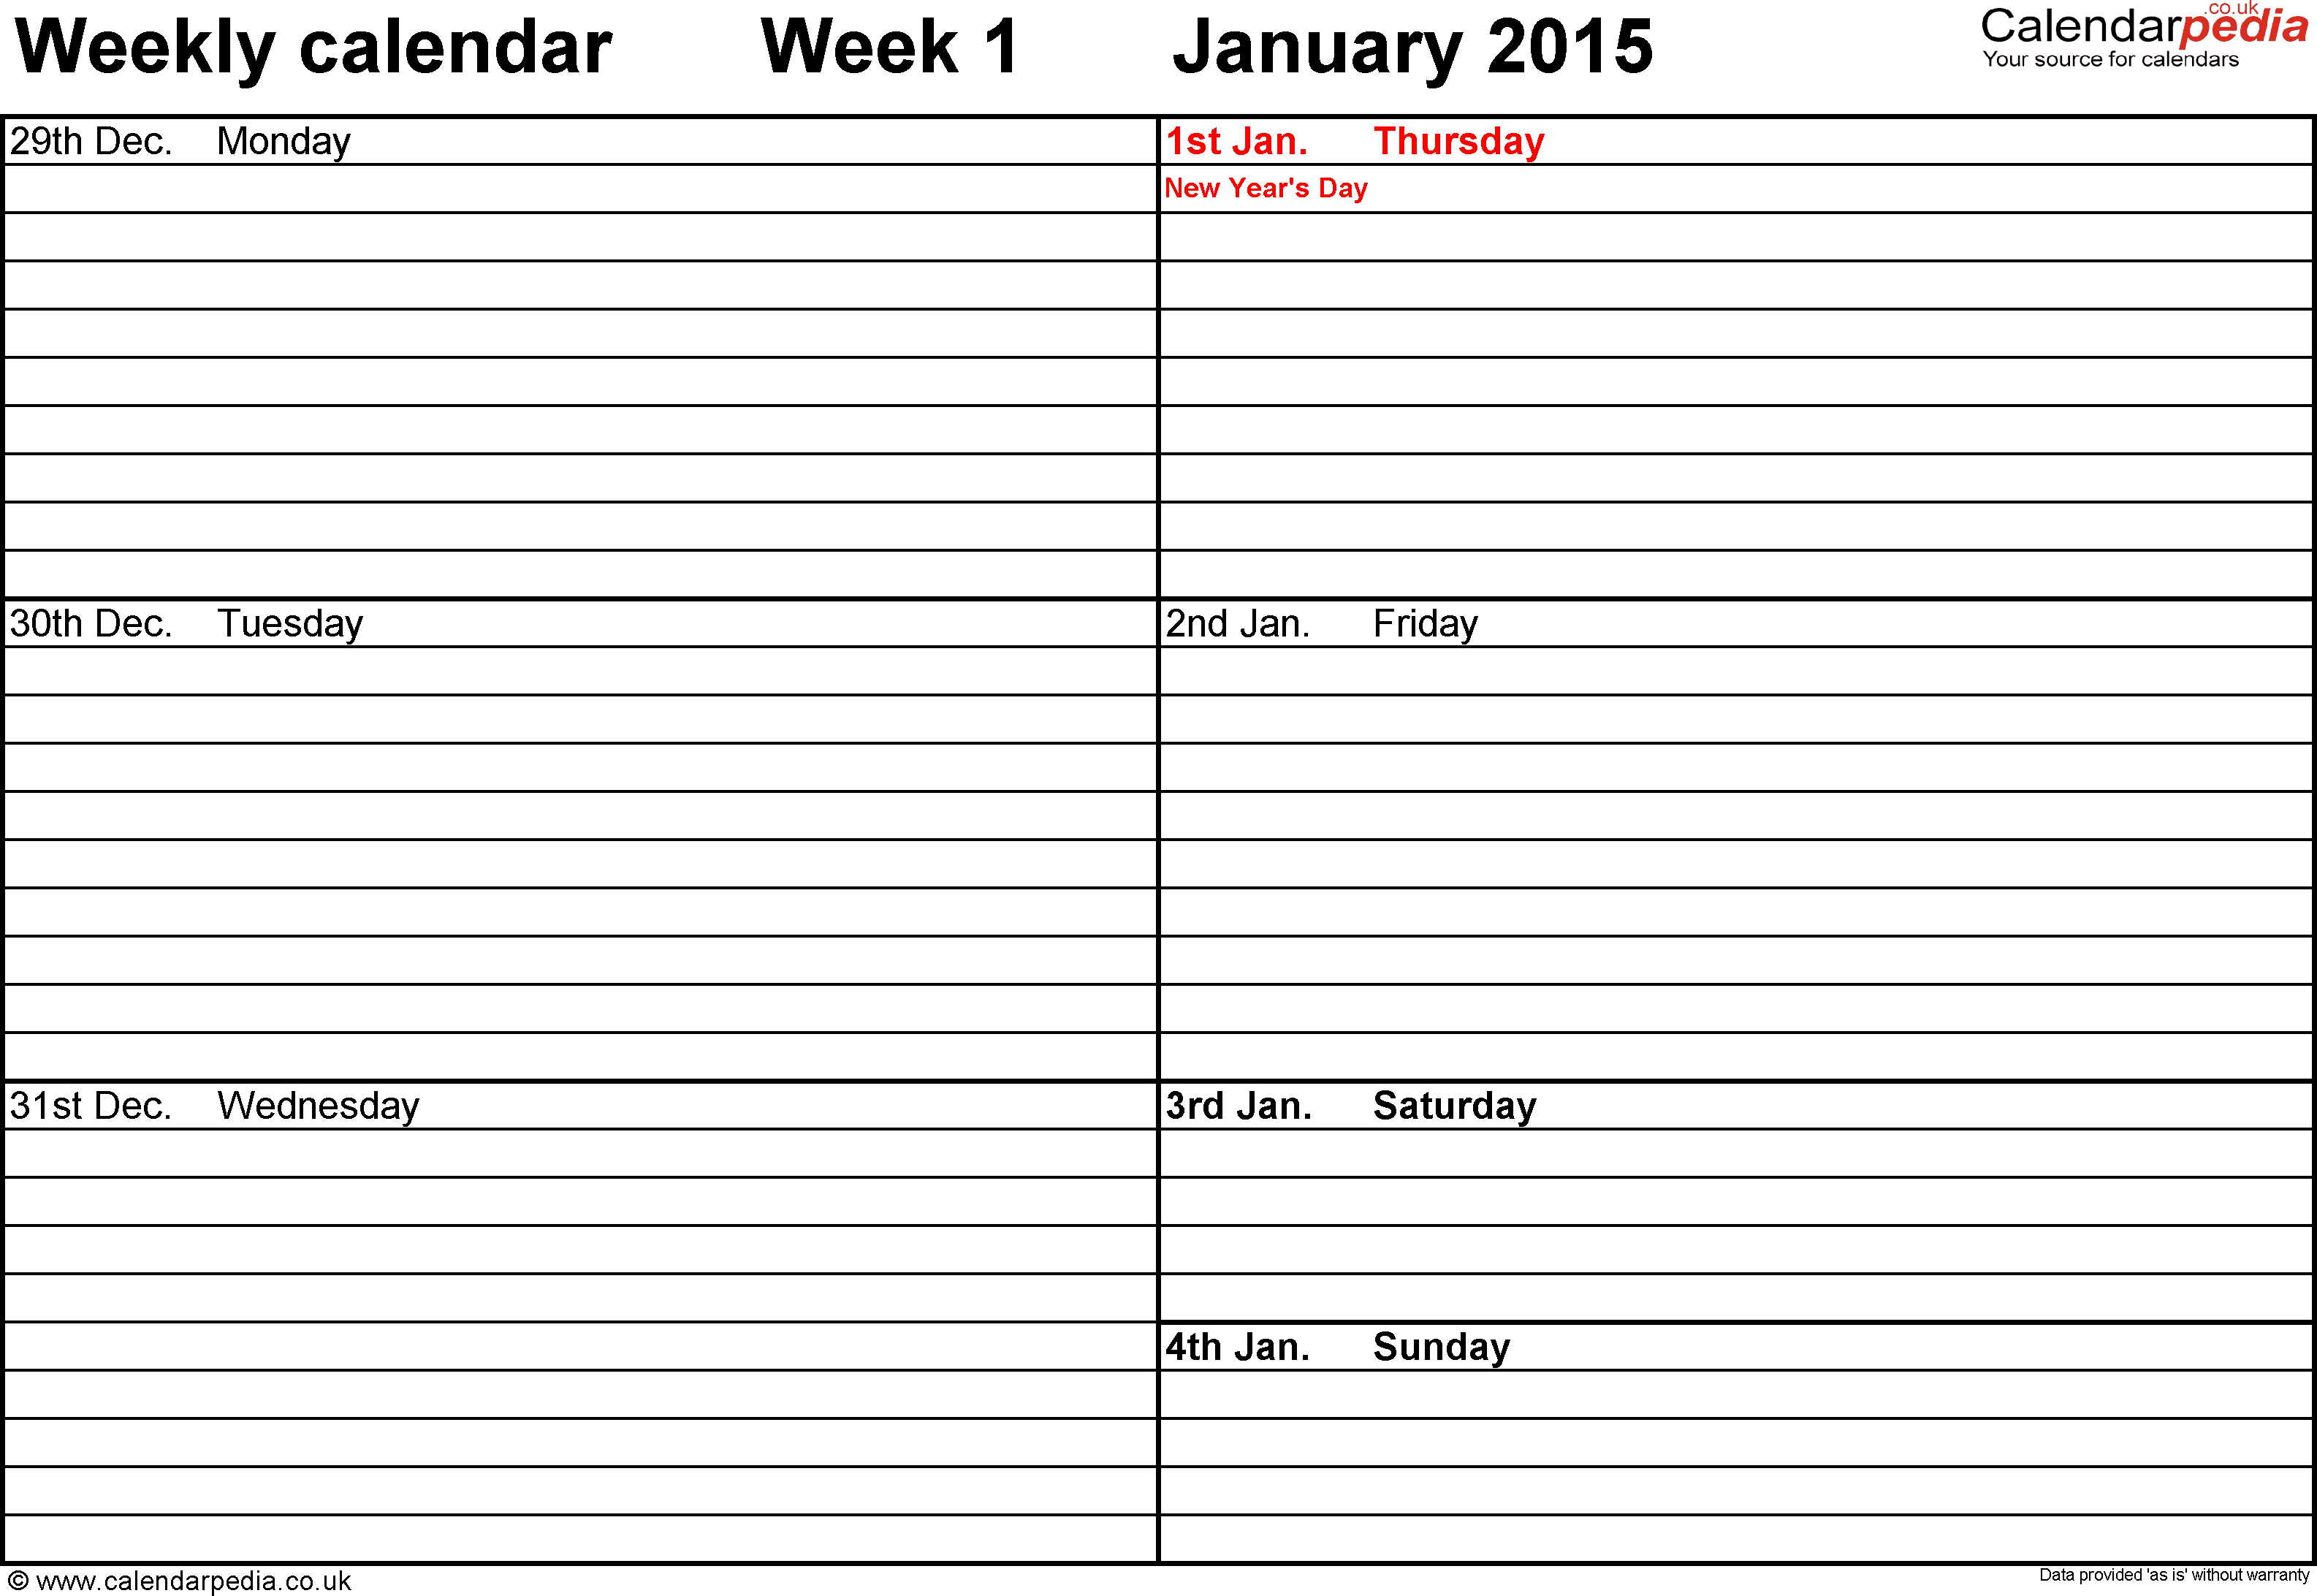 Word template 5: Weekly calendar 2015, landscape orientation, 53 pages (1 calendar week on 1 page), week divided into 2 columns